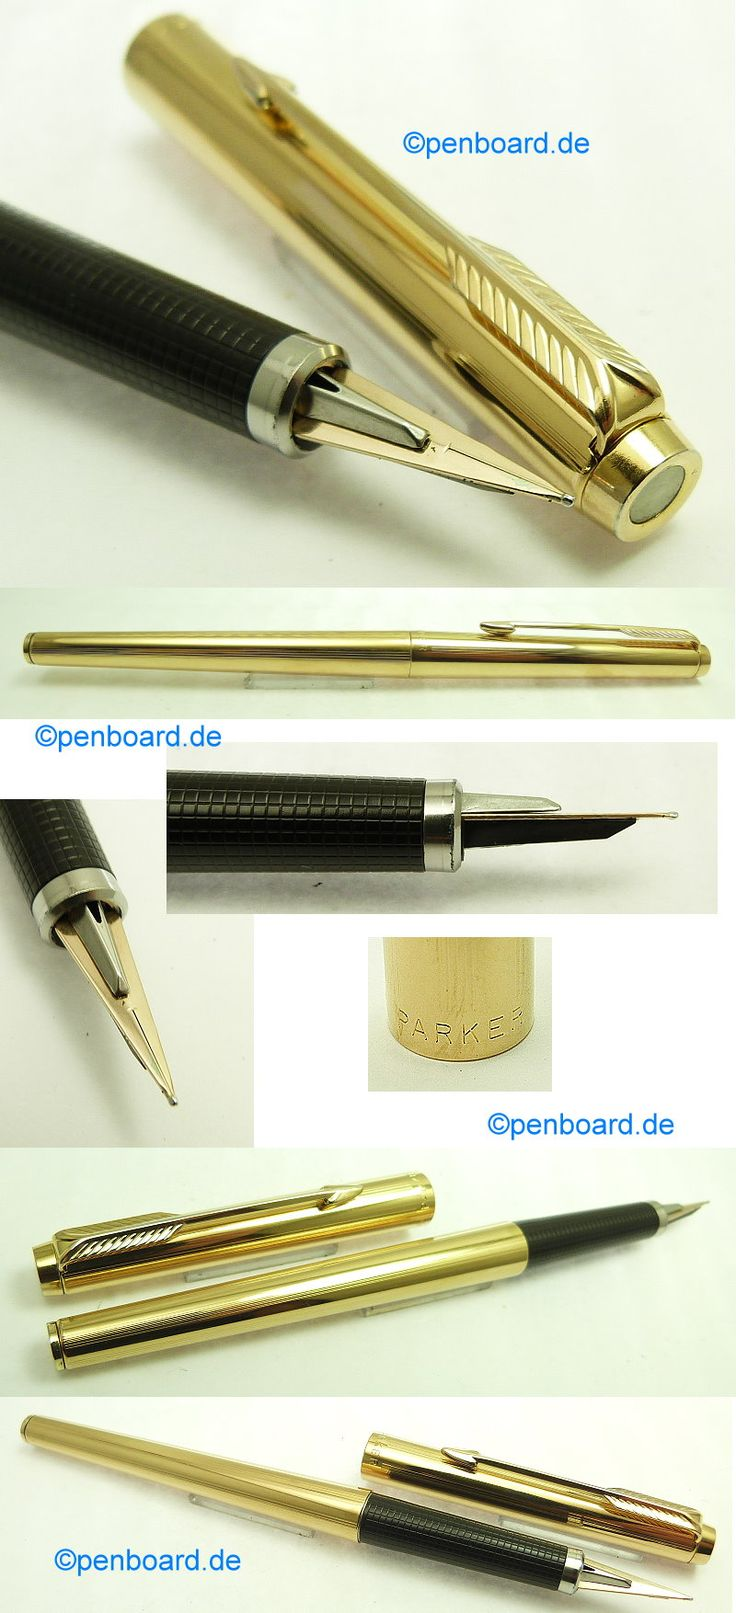 Penboard.de Shop / Parker / Vintage Pens